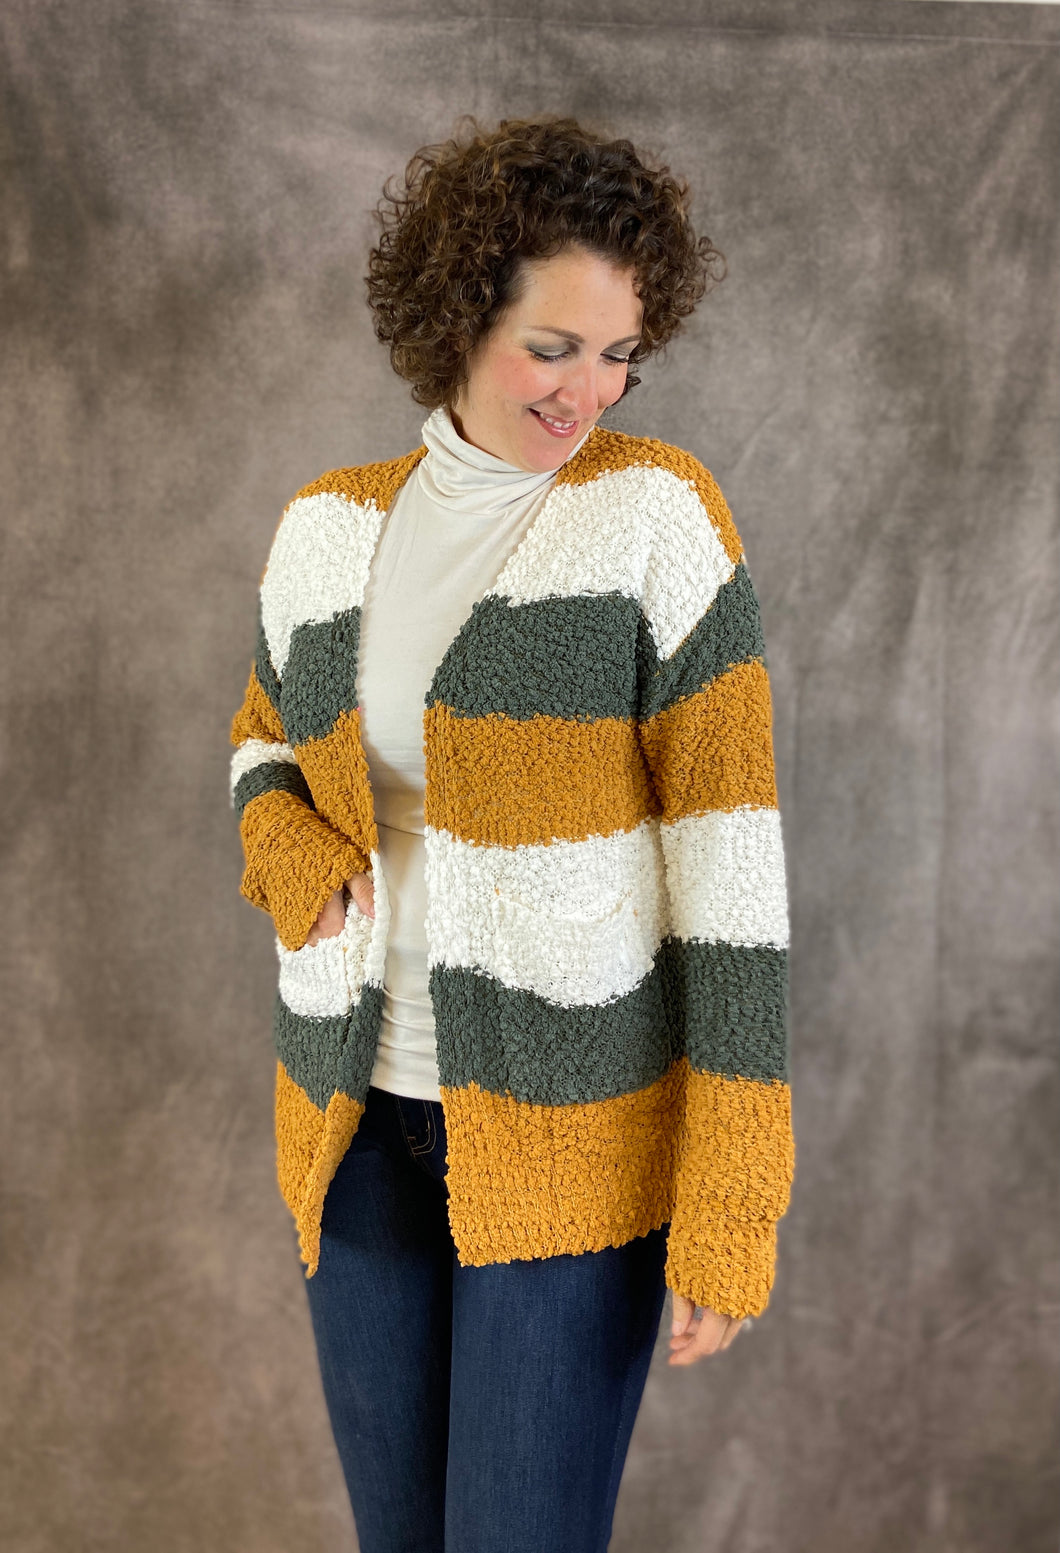 Popcorn Earthy Striped Cardigan